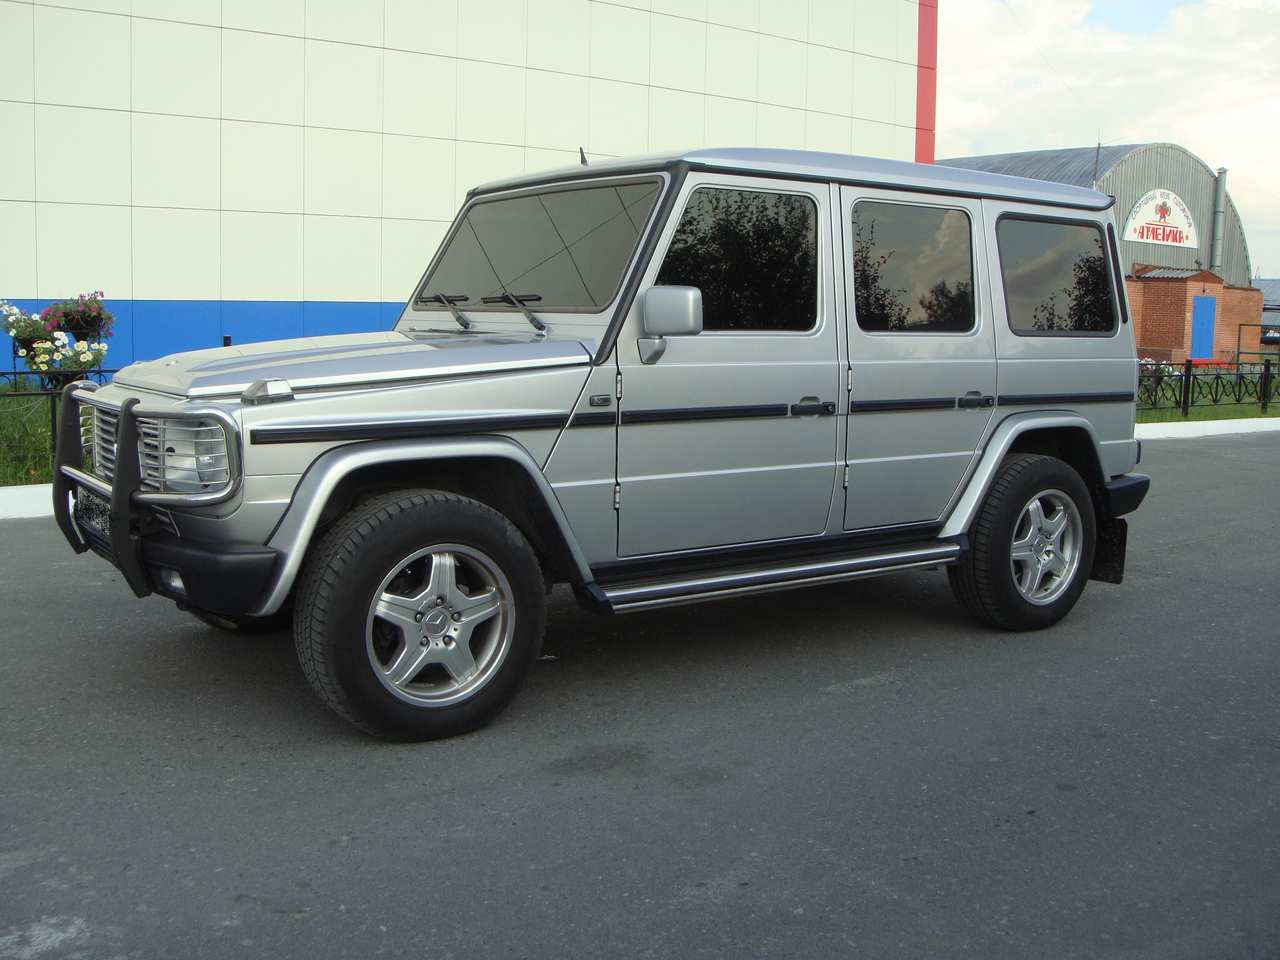 used 2000 mercedes benz g class photos 3000cc diesel automatic for sale. Black Bedroom Furniture Sets. Home Design Ideas